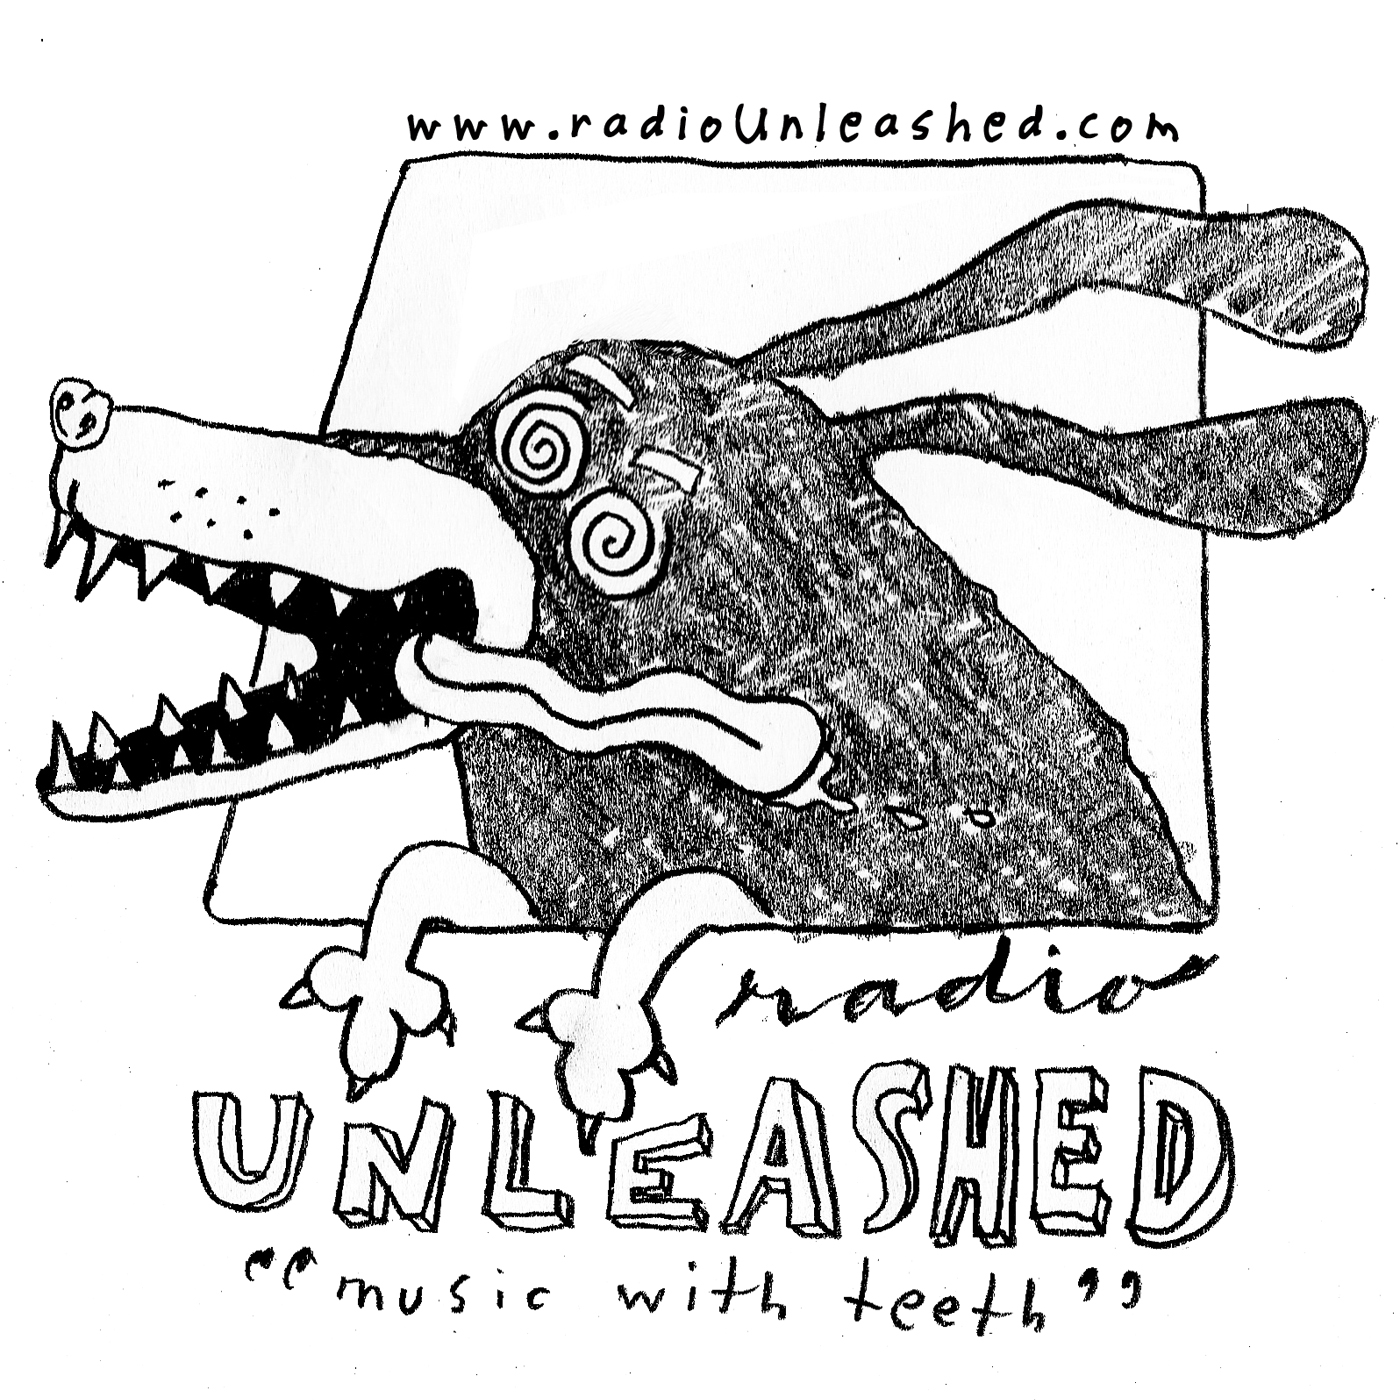 Dave Leonard's radio Unleashed